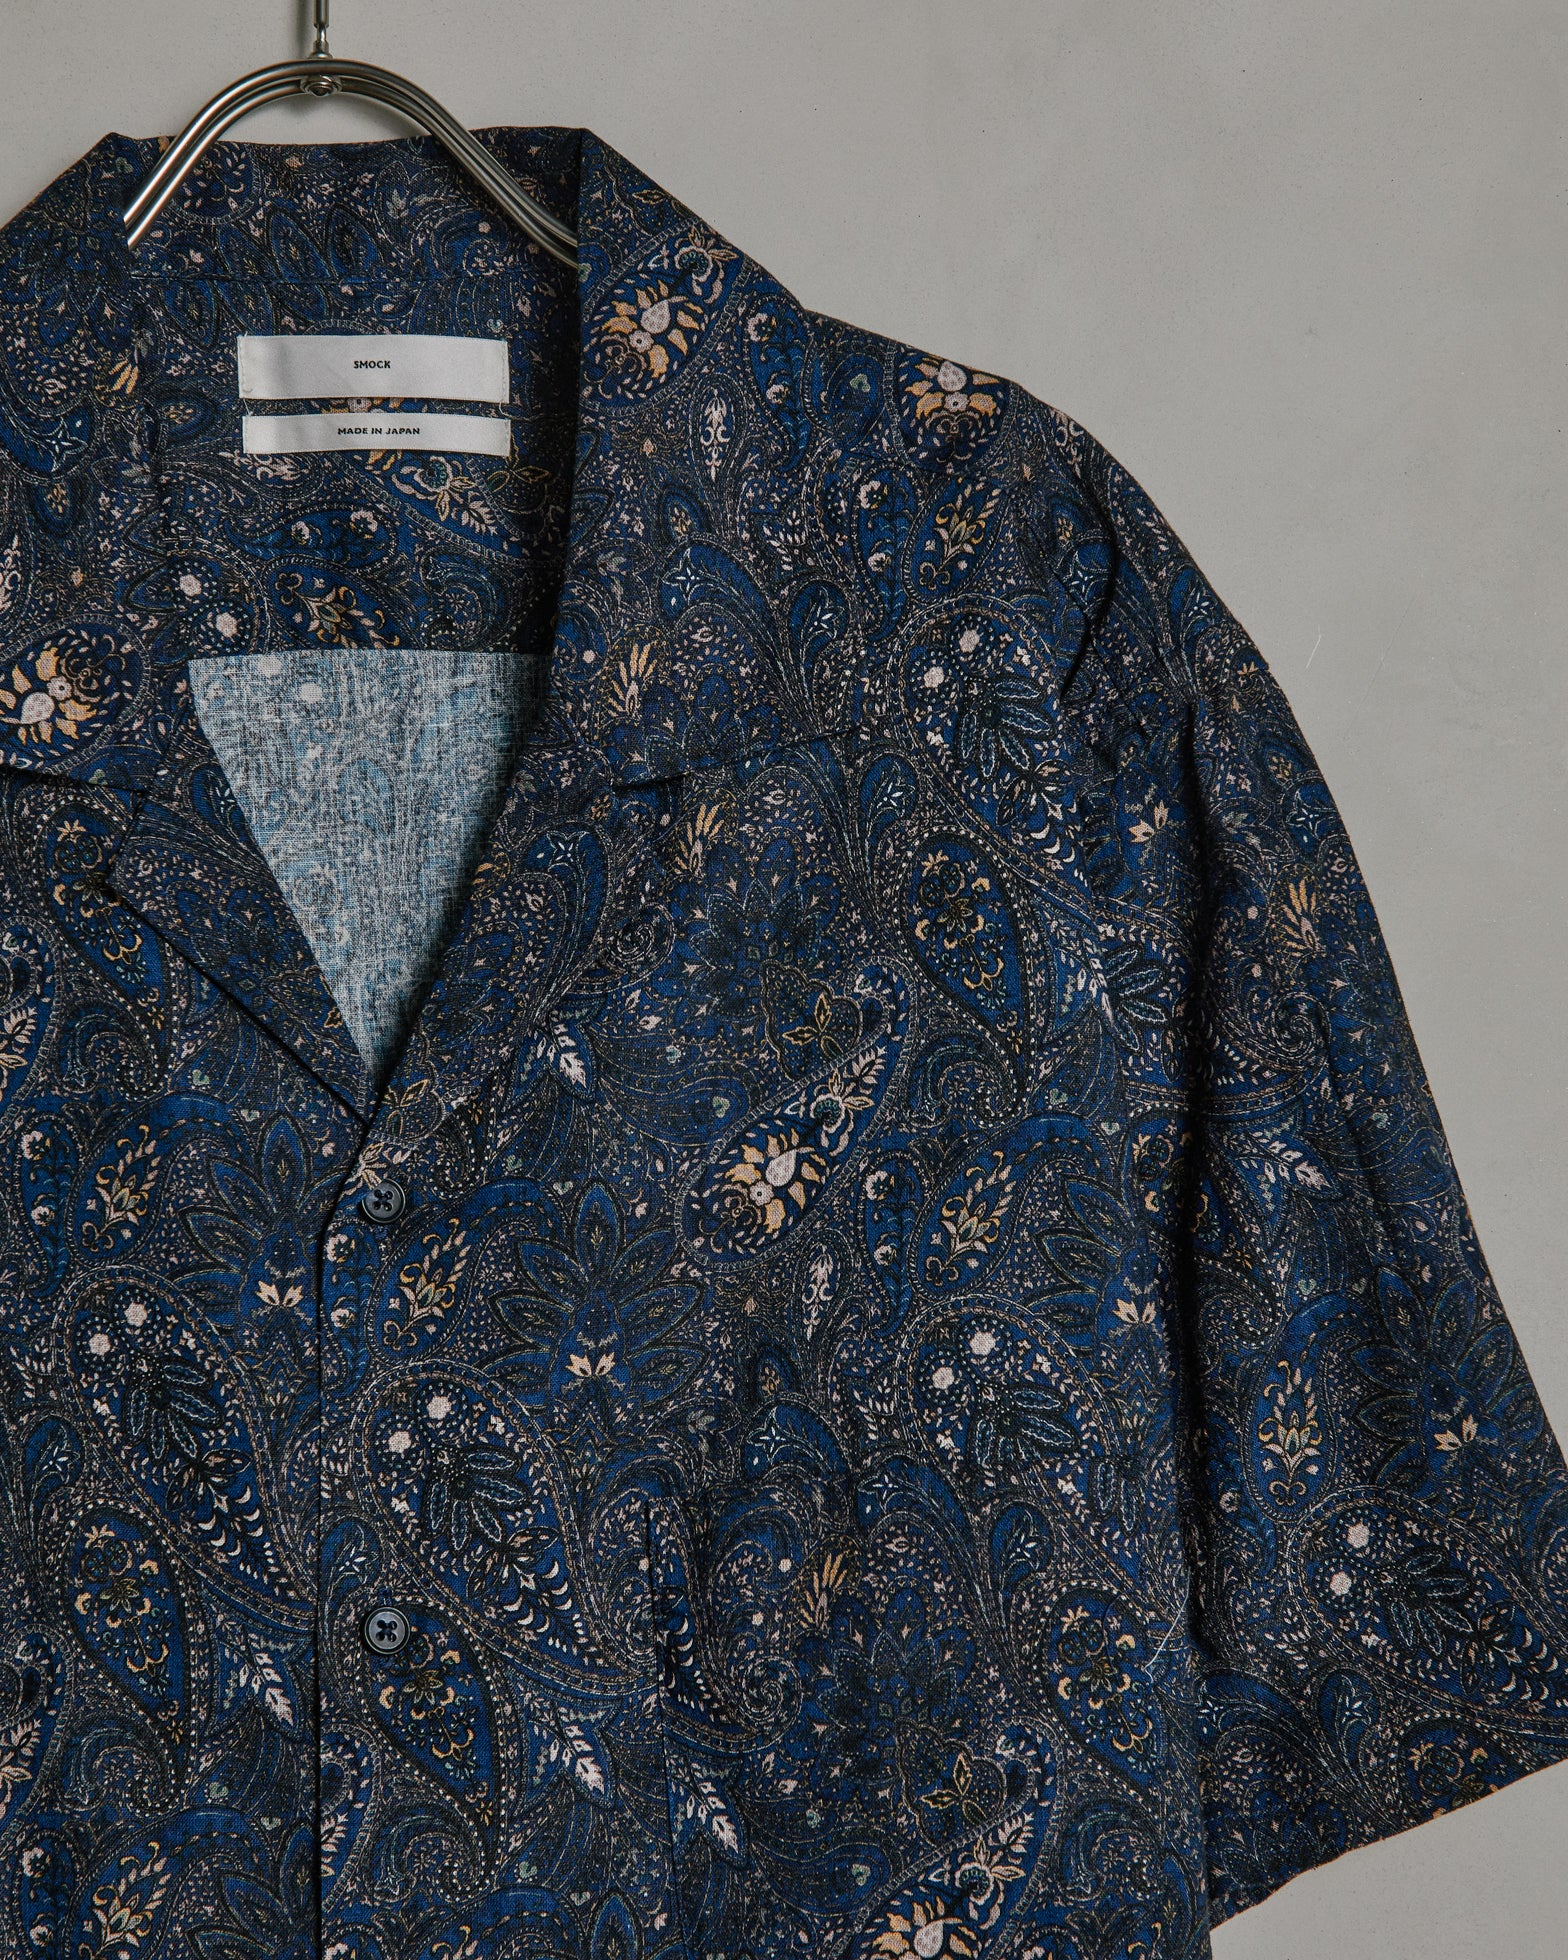 Camp Shirt in Navy Paisley